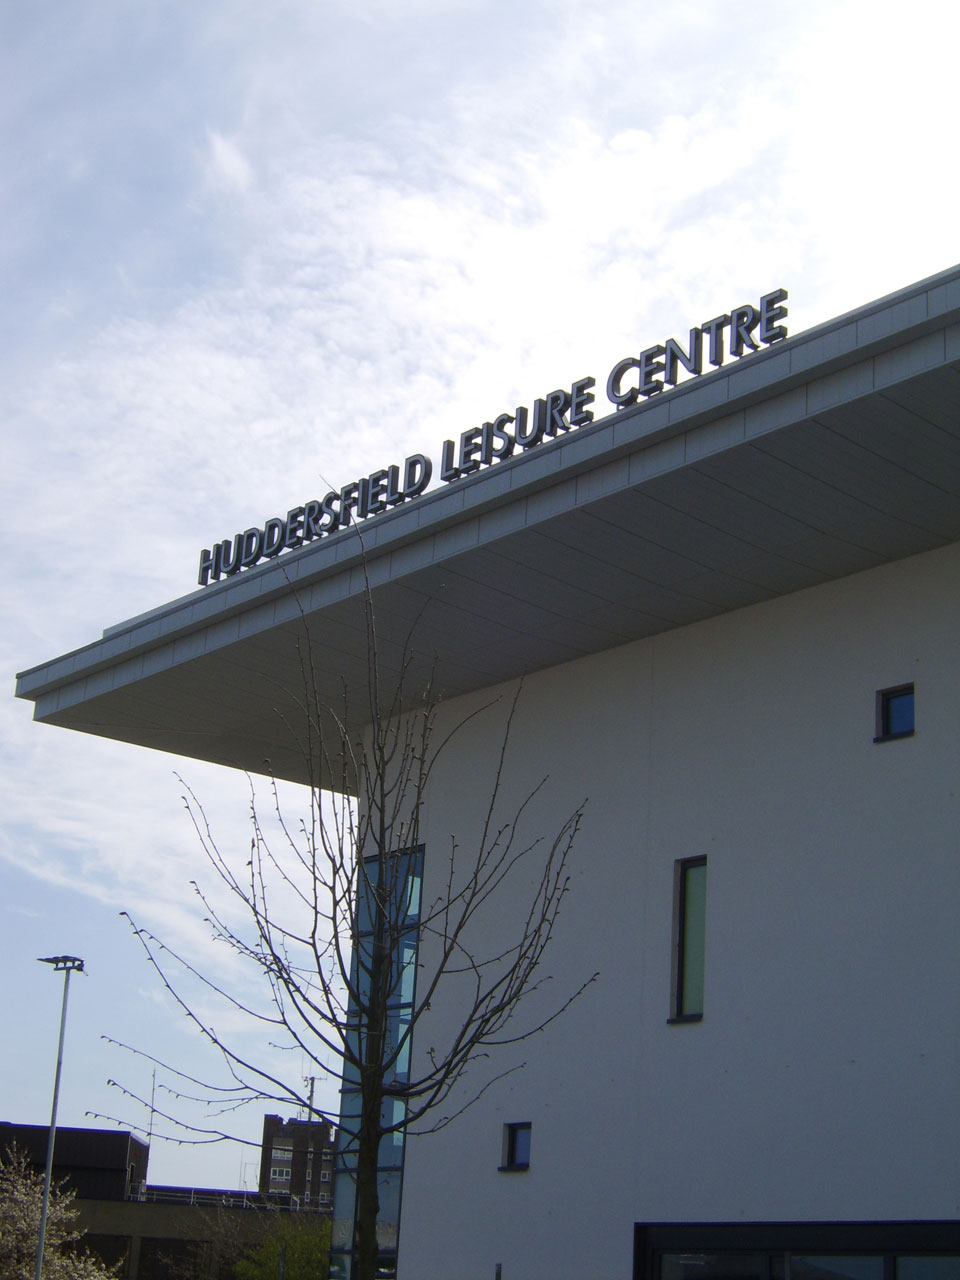 Huddersfield Leisure Centre Entrance and Building signage